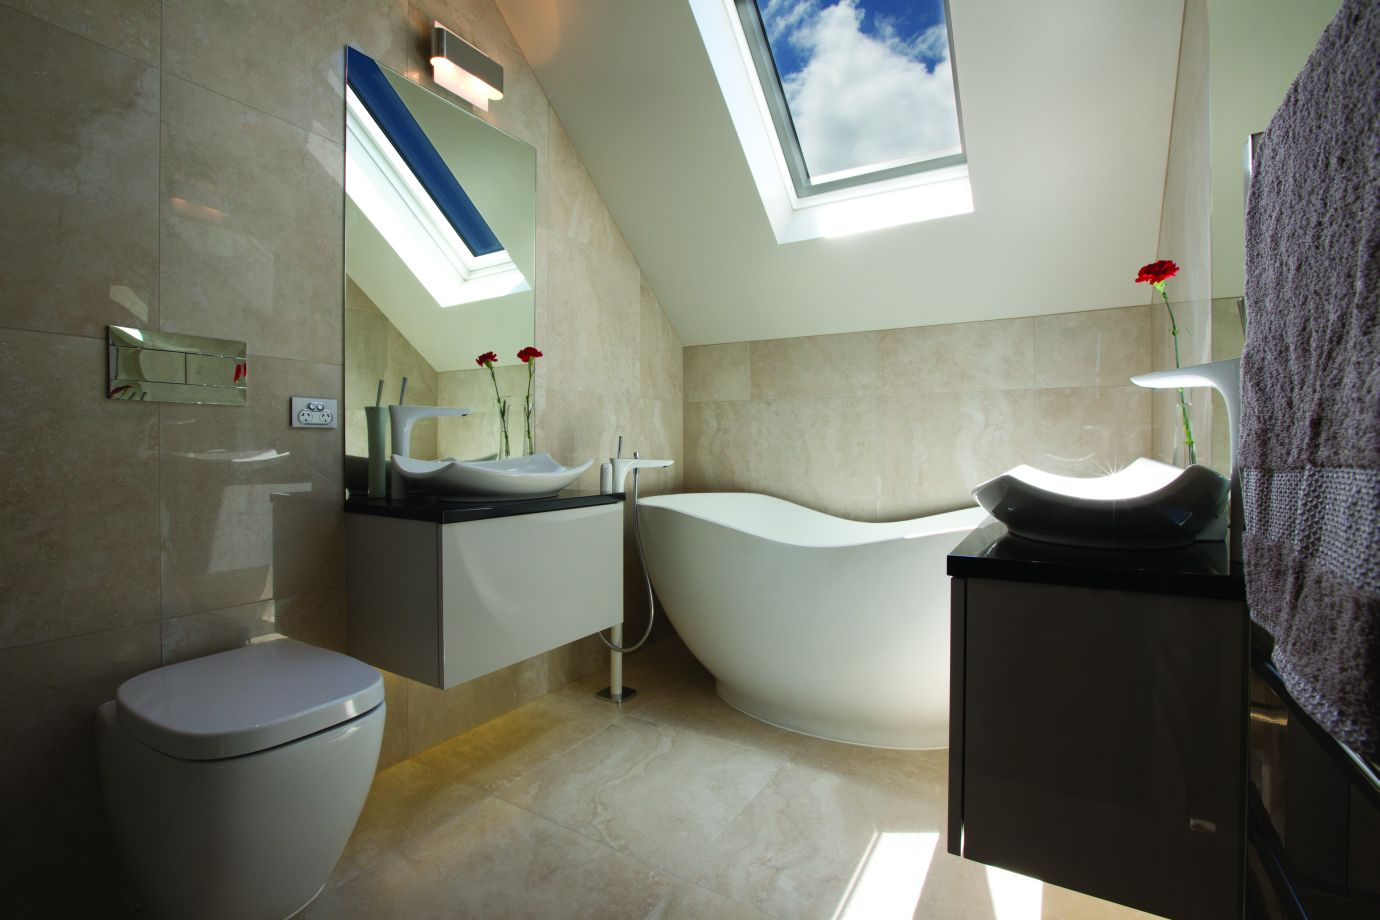 Travertino Bone Bathroom porcelain floor and wall tiles